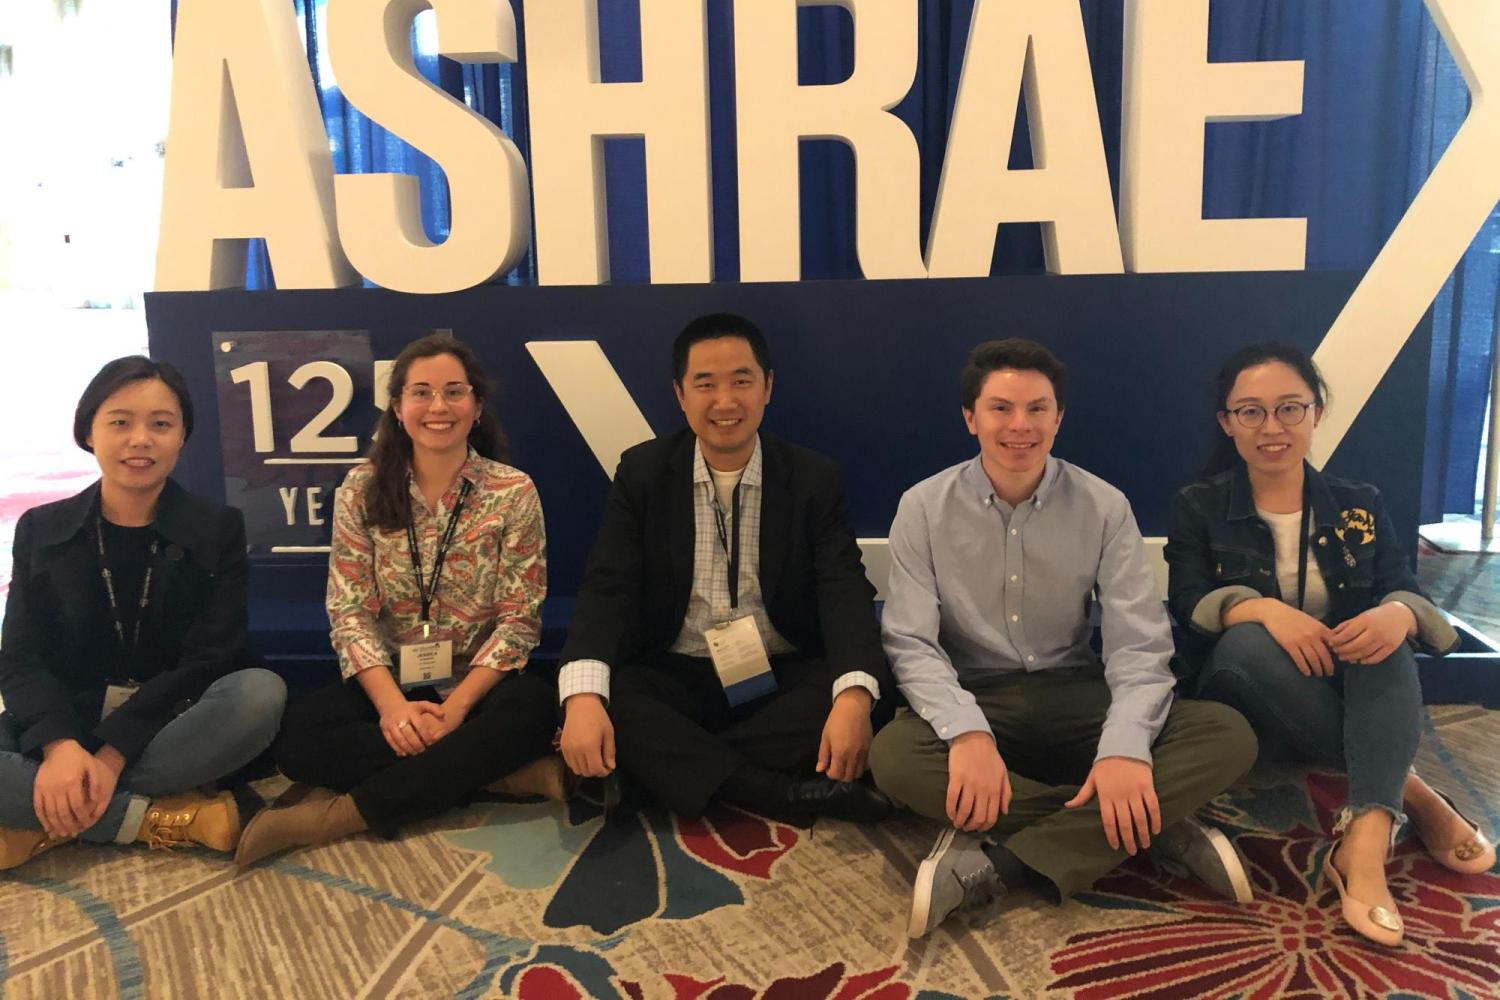 Four Ph.D. students receive scholarships to attend ASHRAE Winter Conference